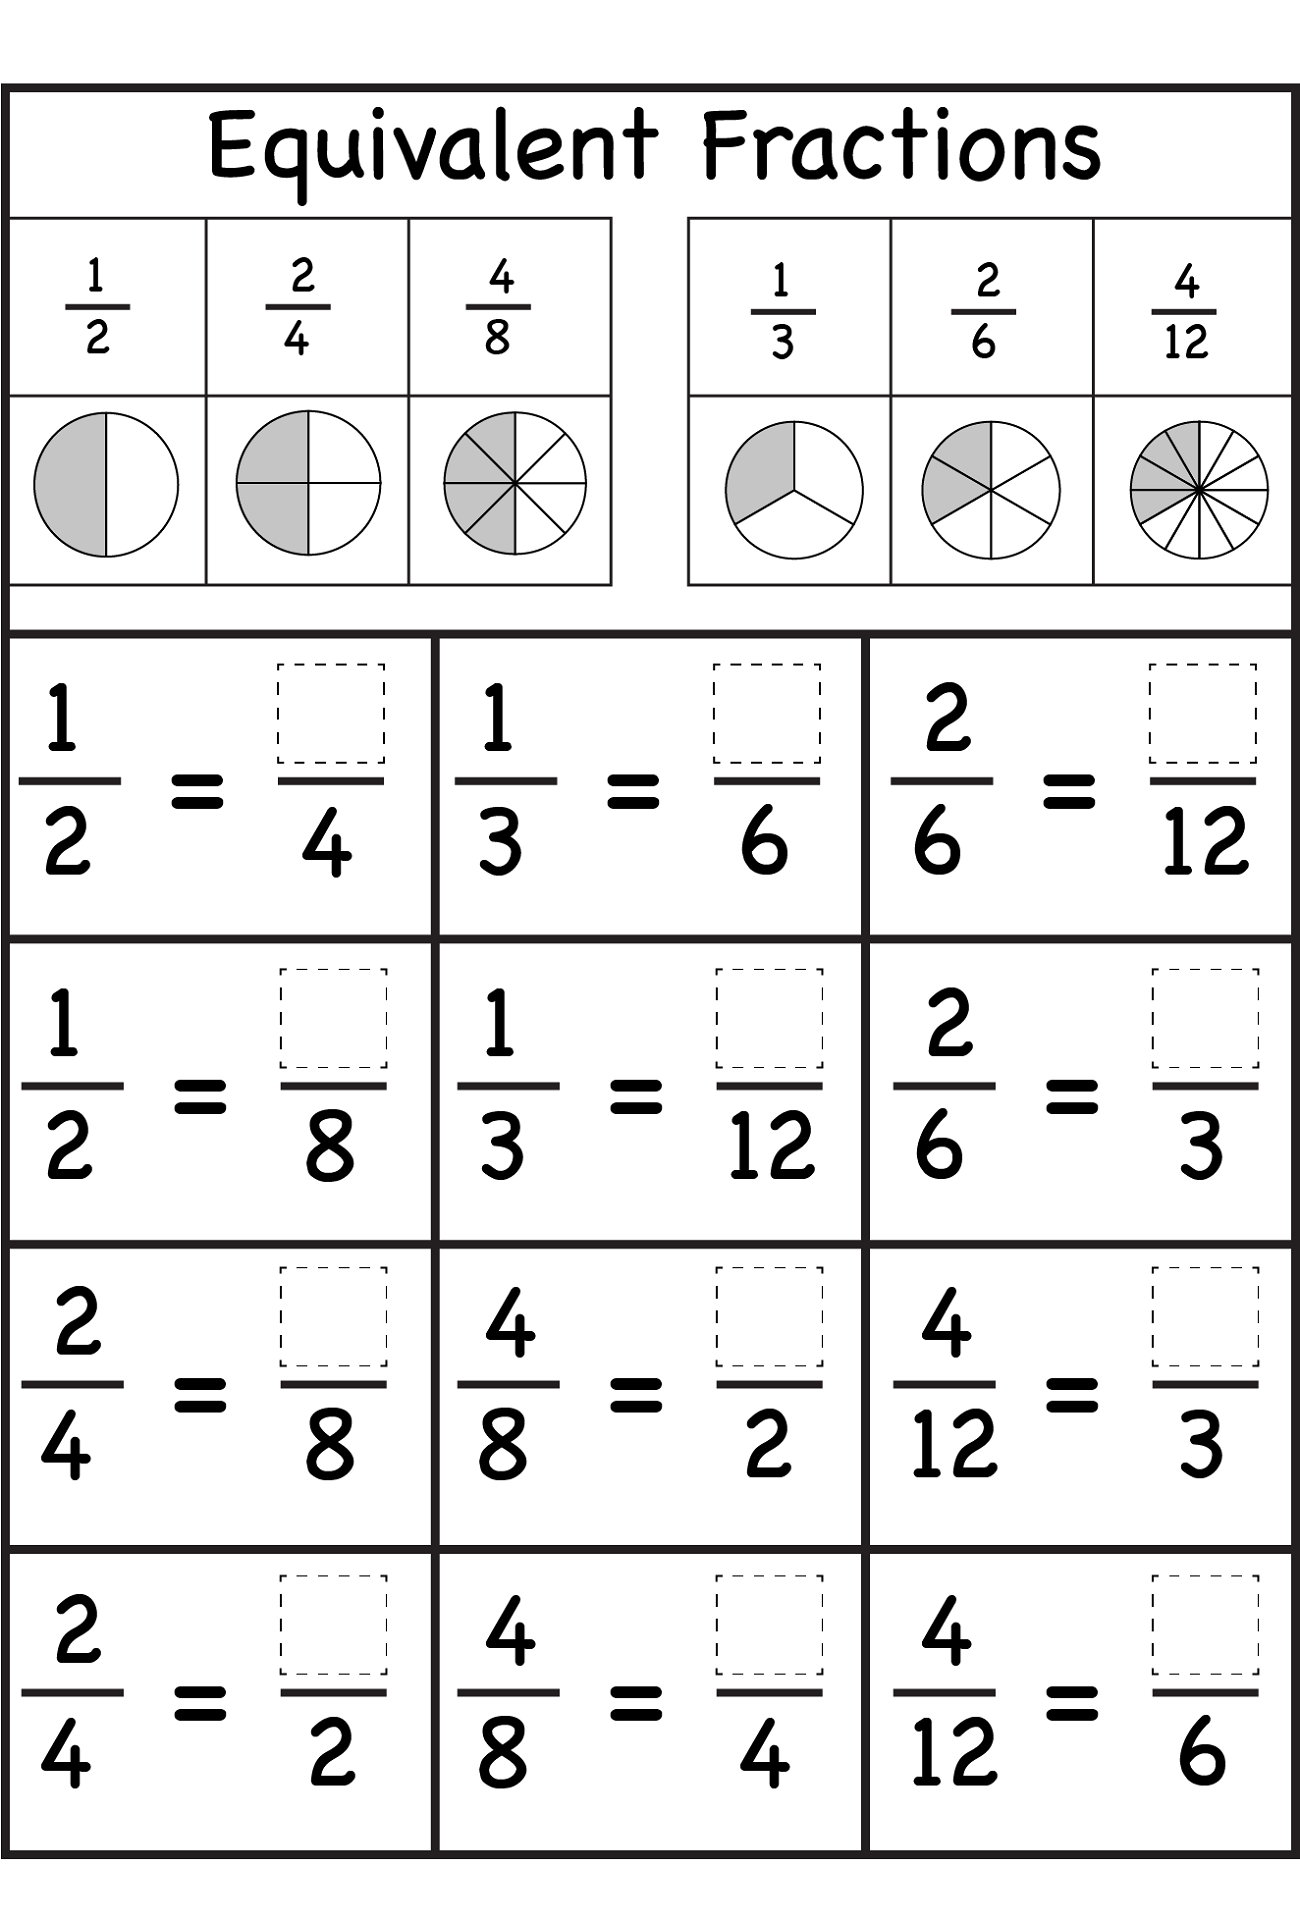 Worksheets Fraction Worksheet math fraction worksheets for kids learning printable equivalent worksheets